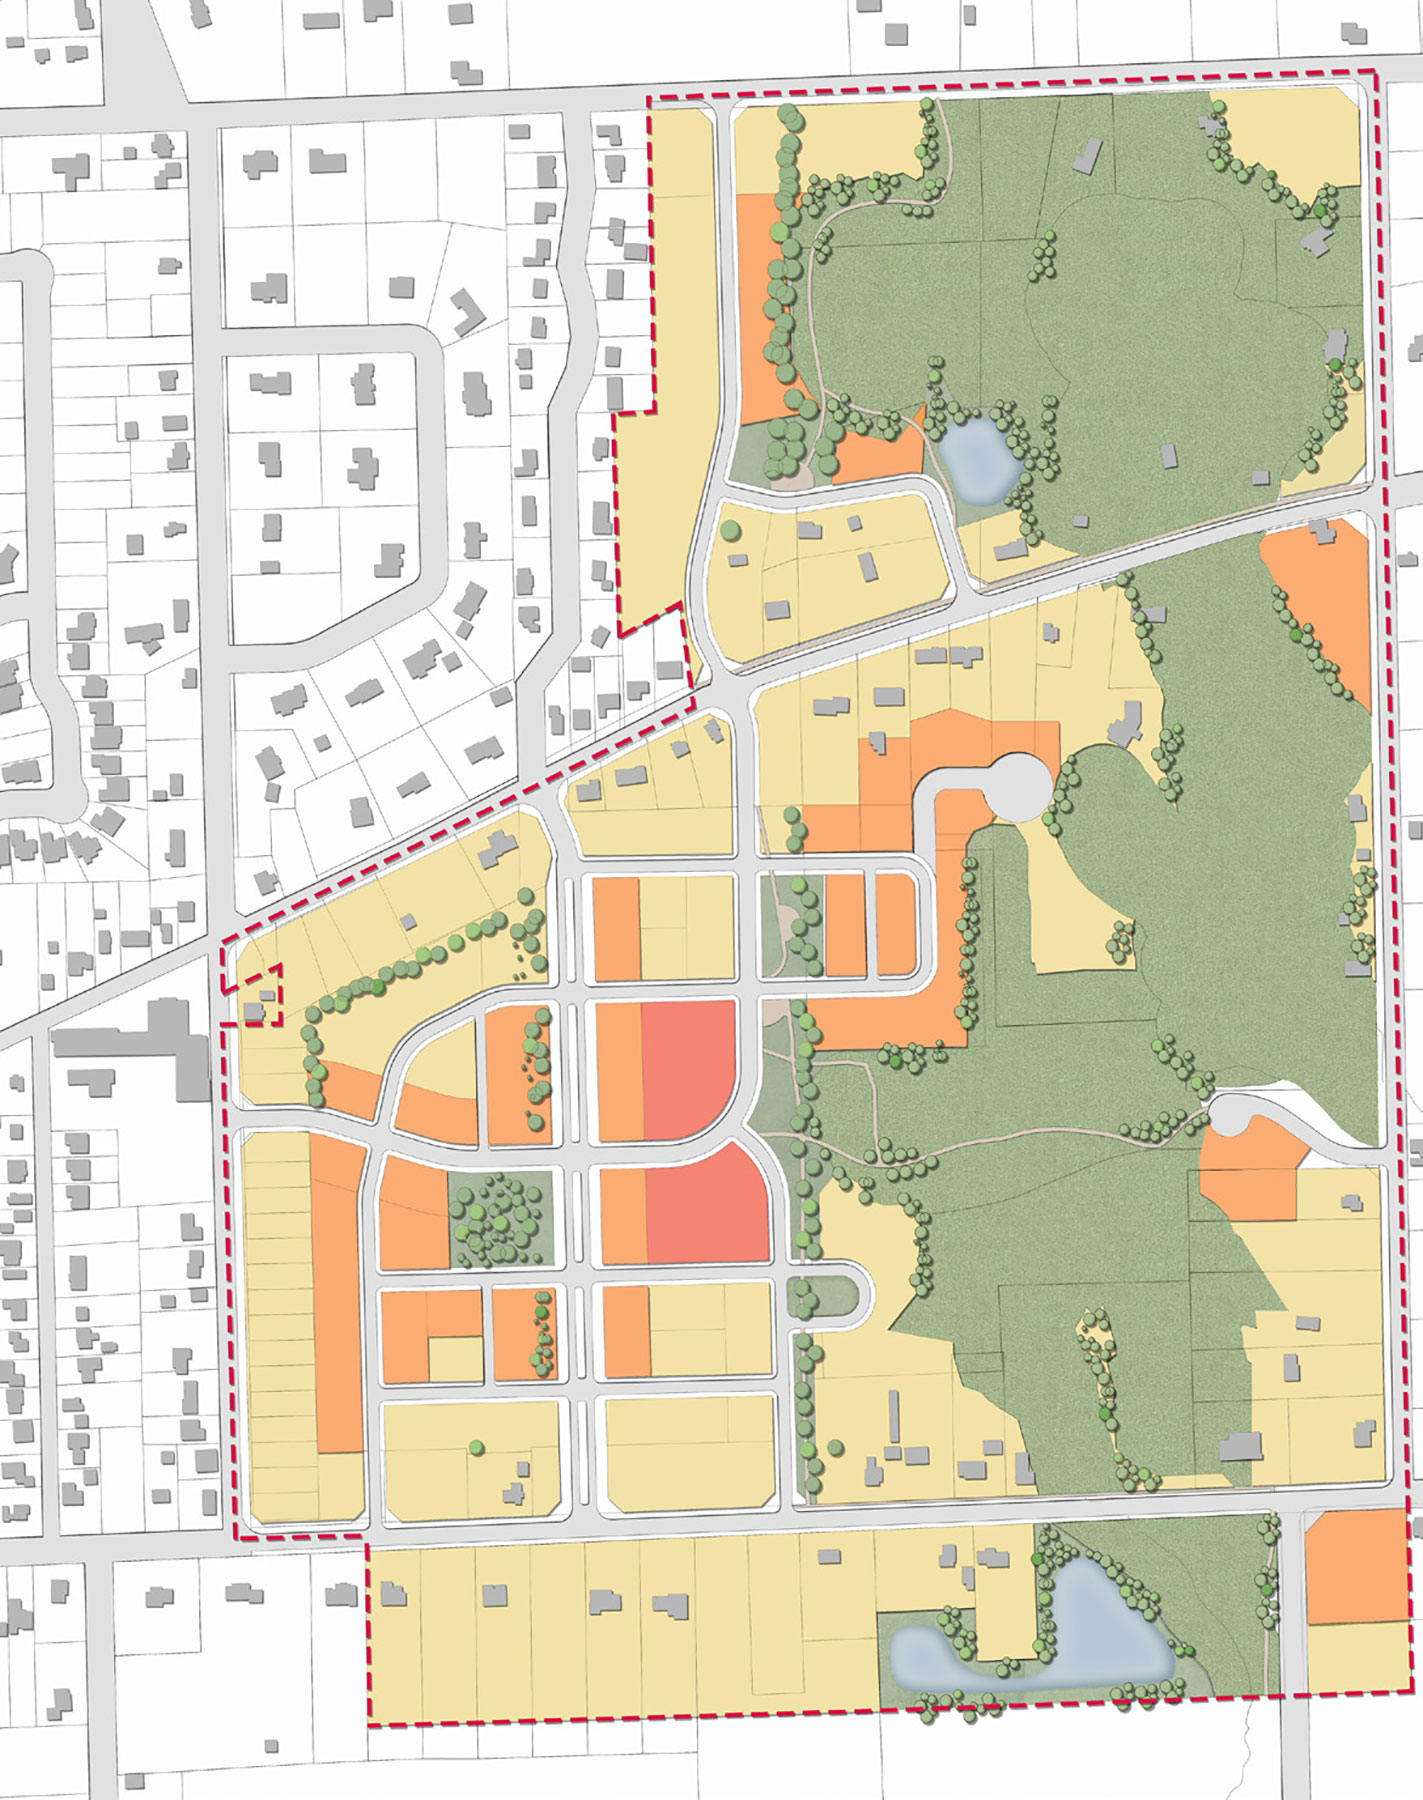 Proposed land use plan of the East Fenwick Secondary Plan area.